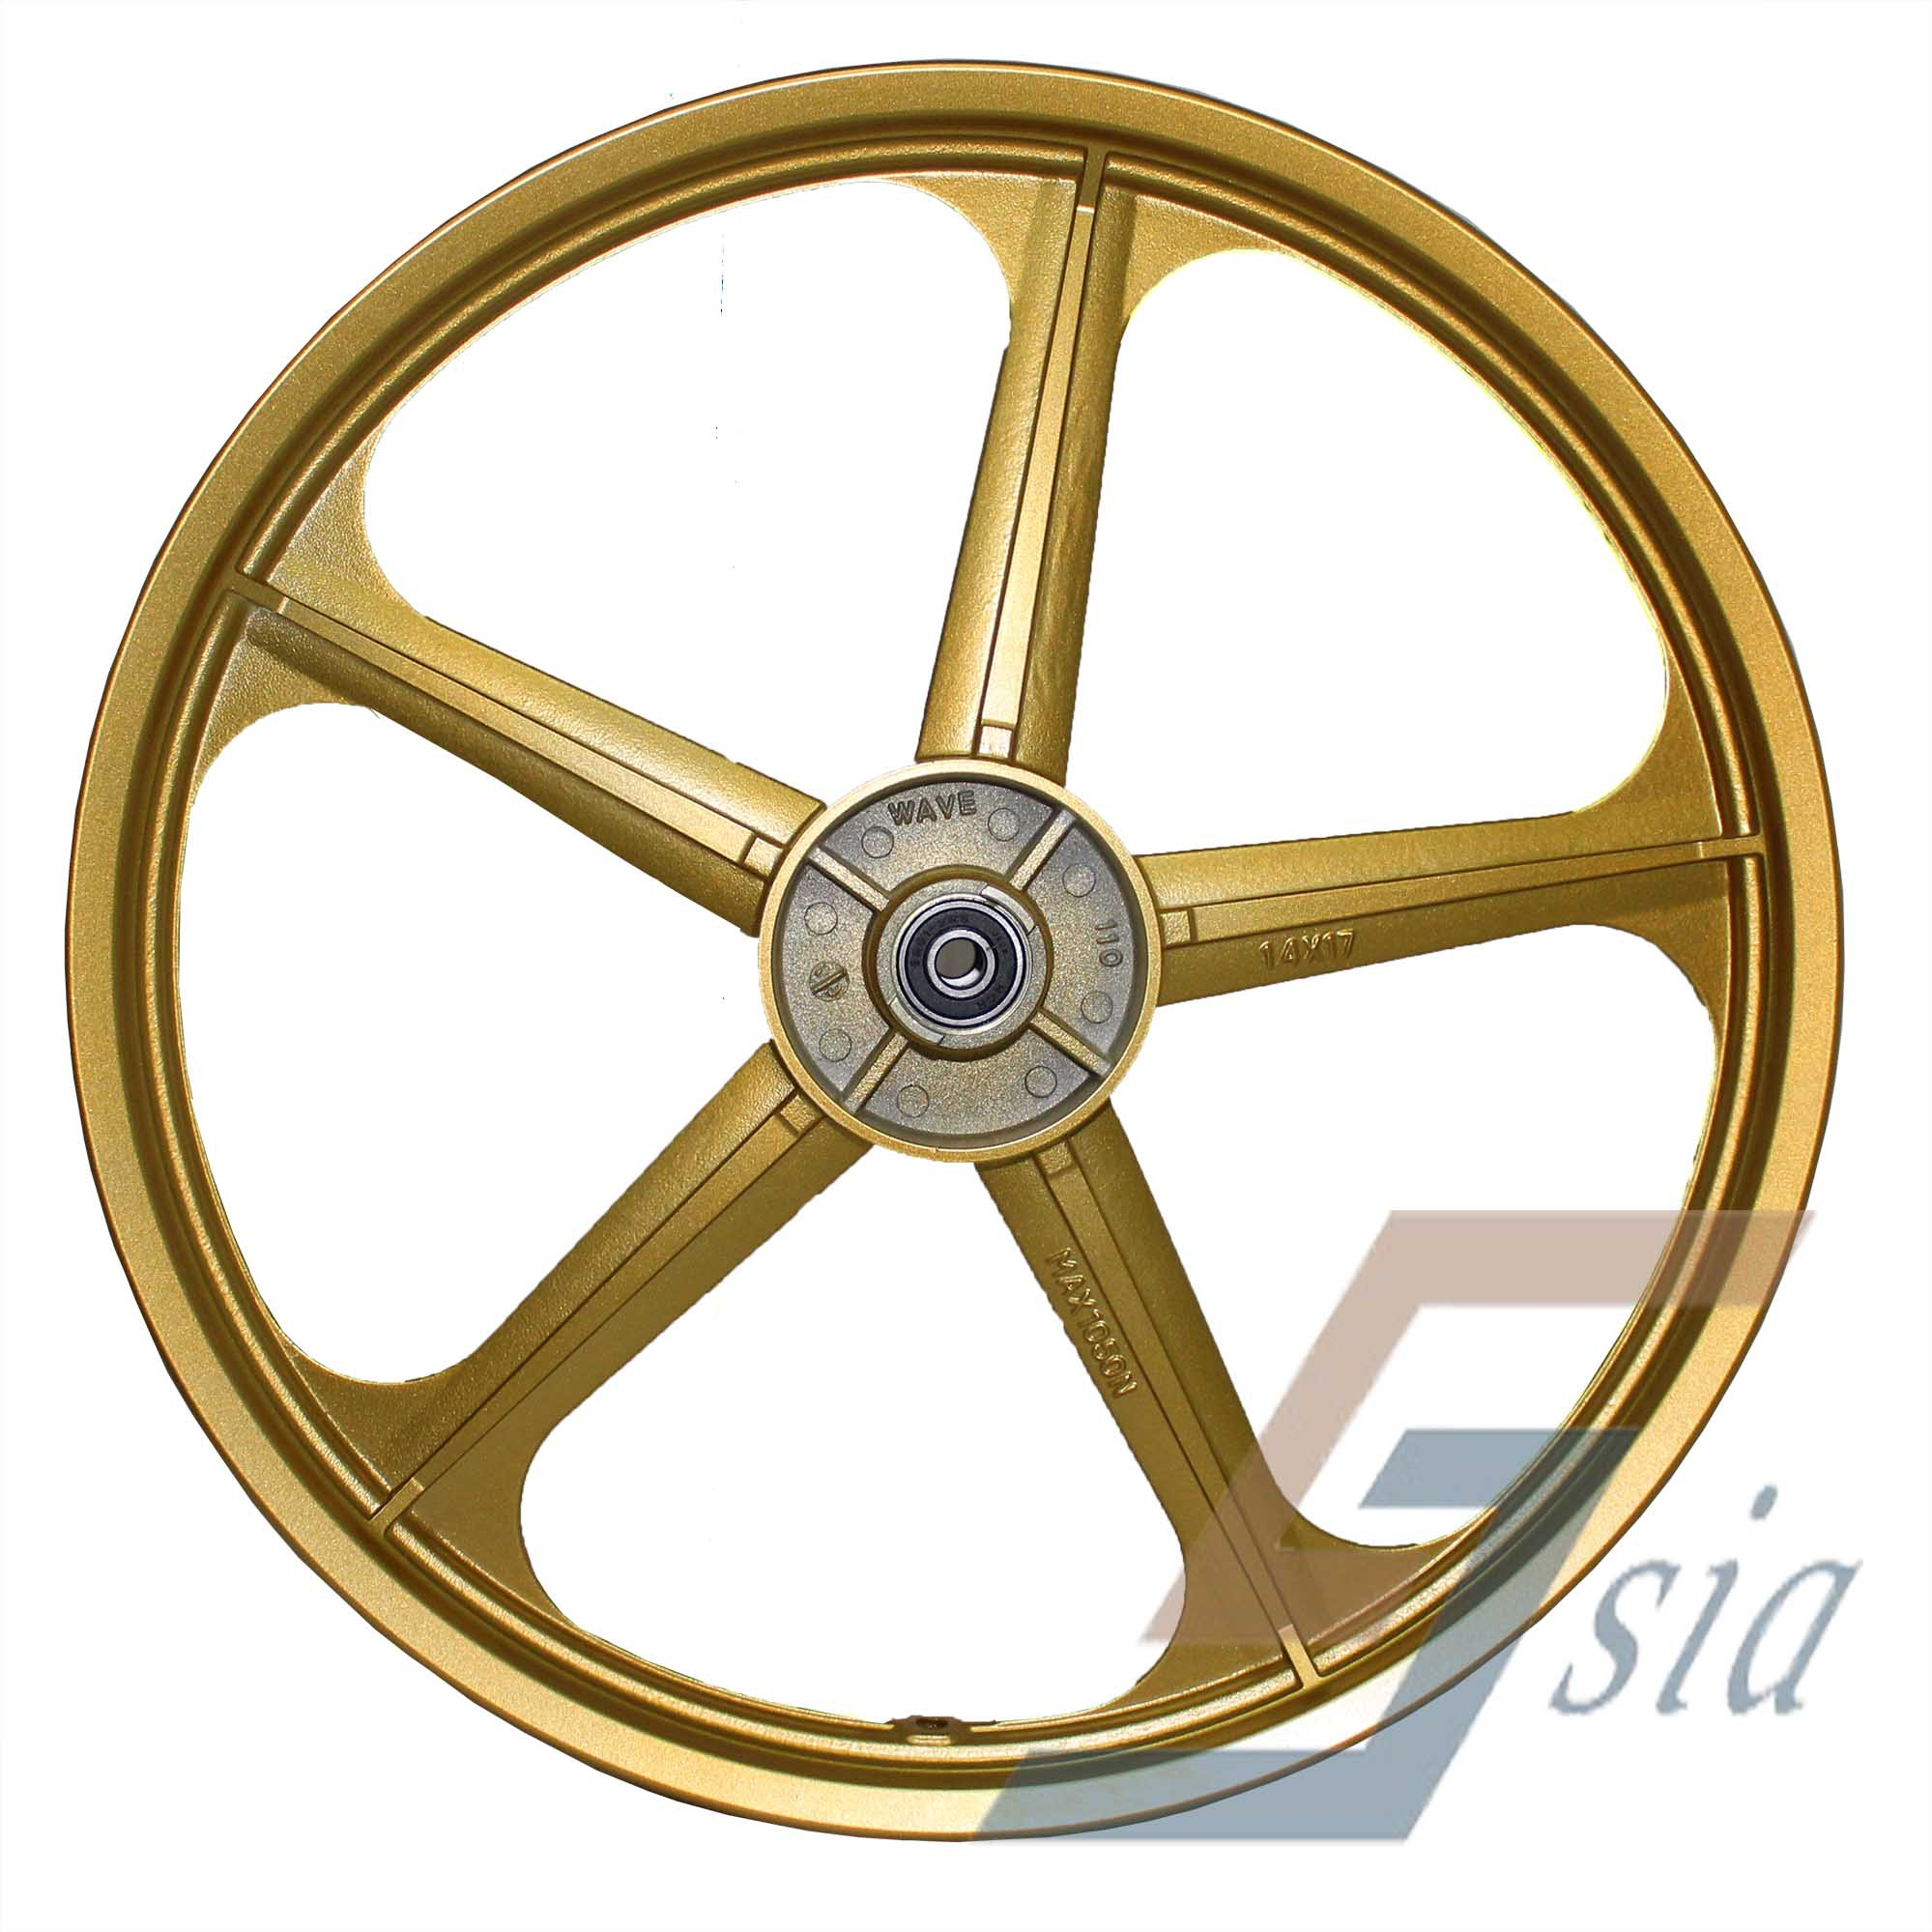 Wave110/Dash110/Future/Wave125i BS2 Racing Sport Rims (Gold)